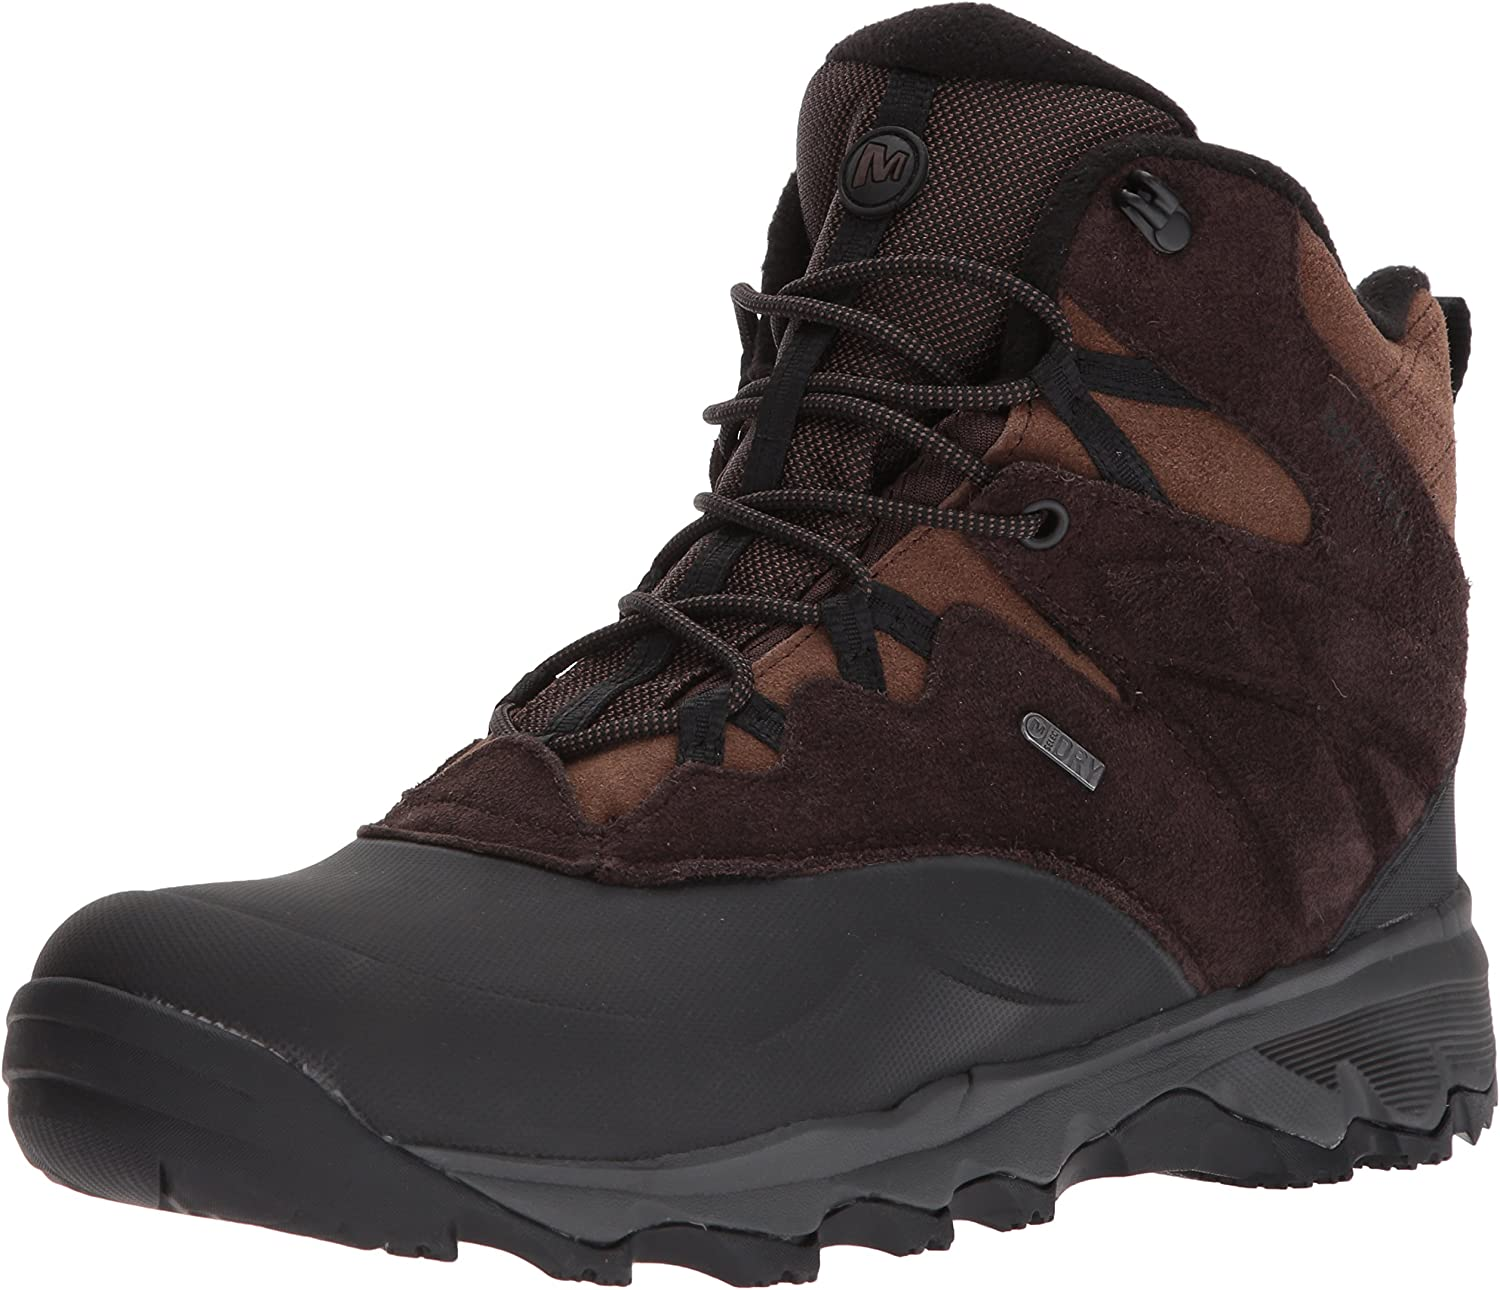 Merrell Men's Thermo Shiver 6  Waterproof High Rise Hiking Boots